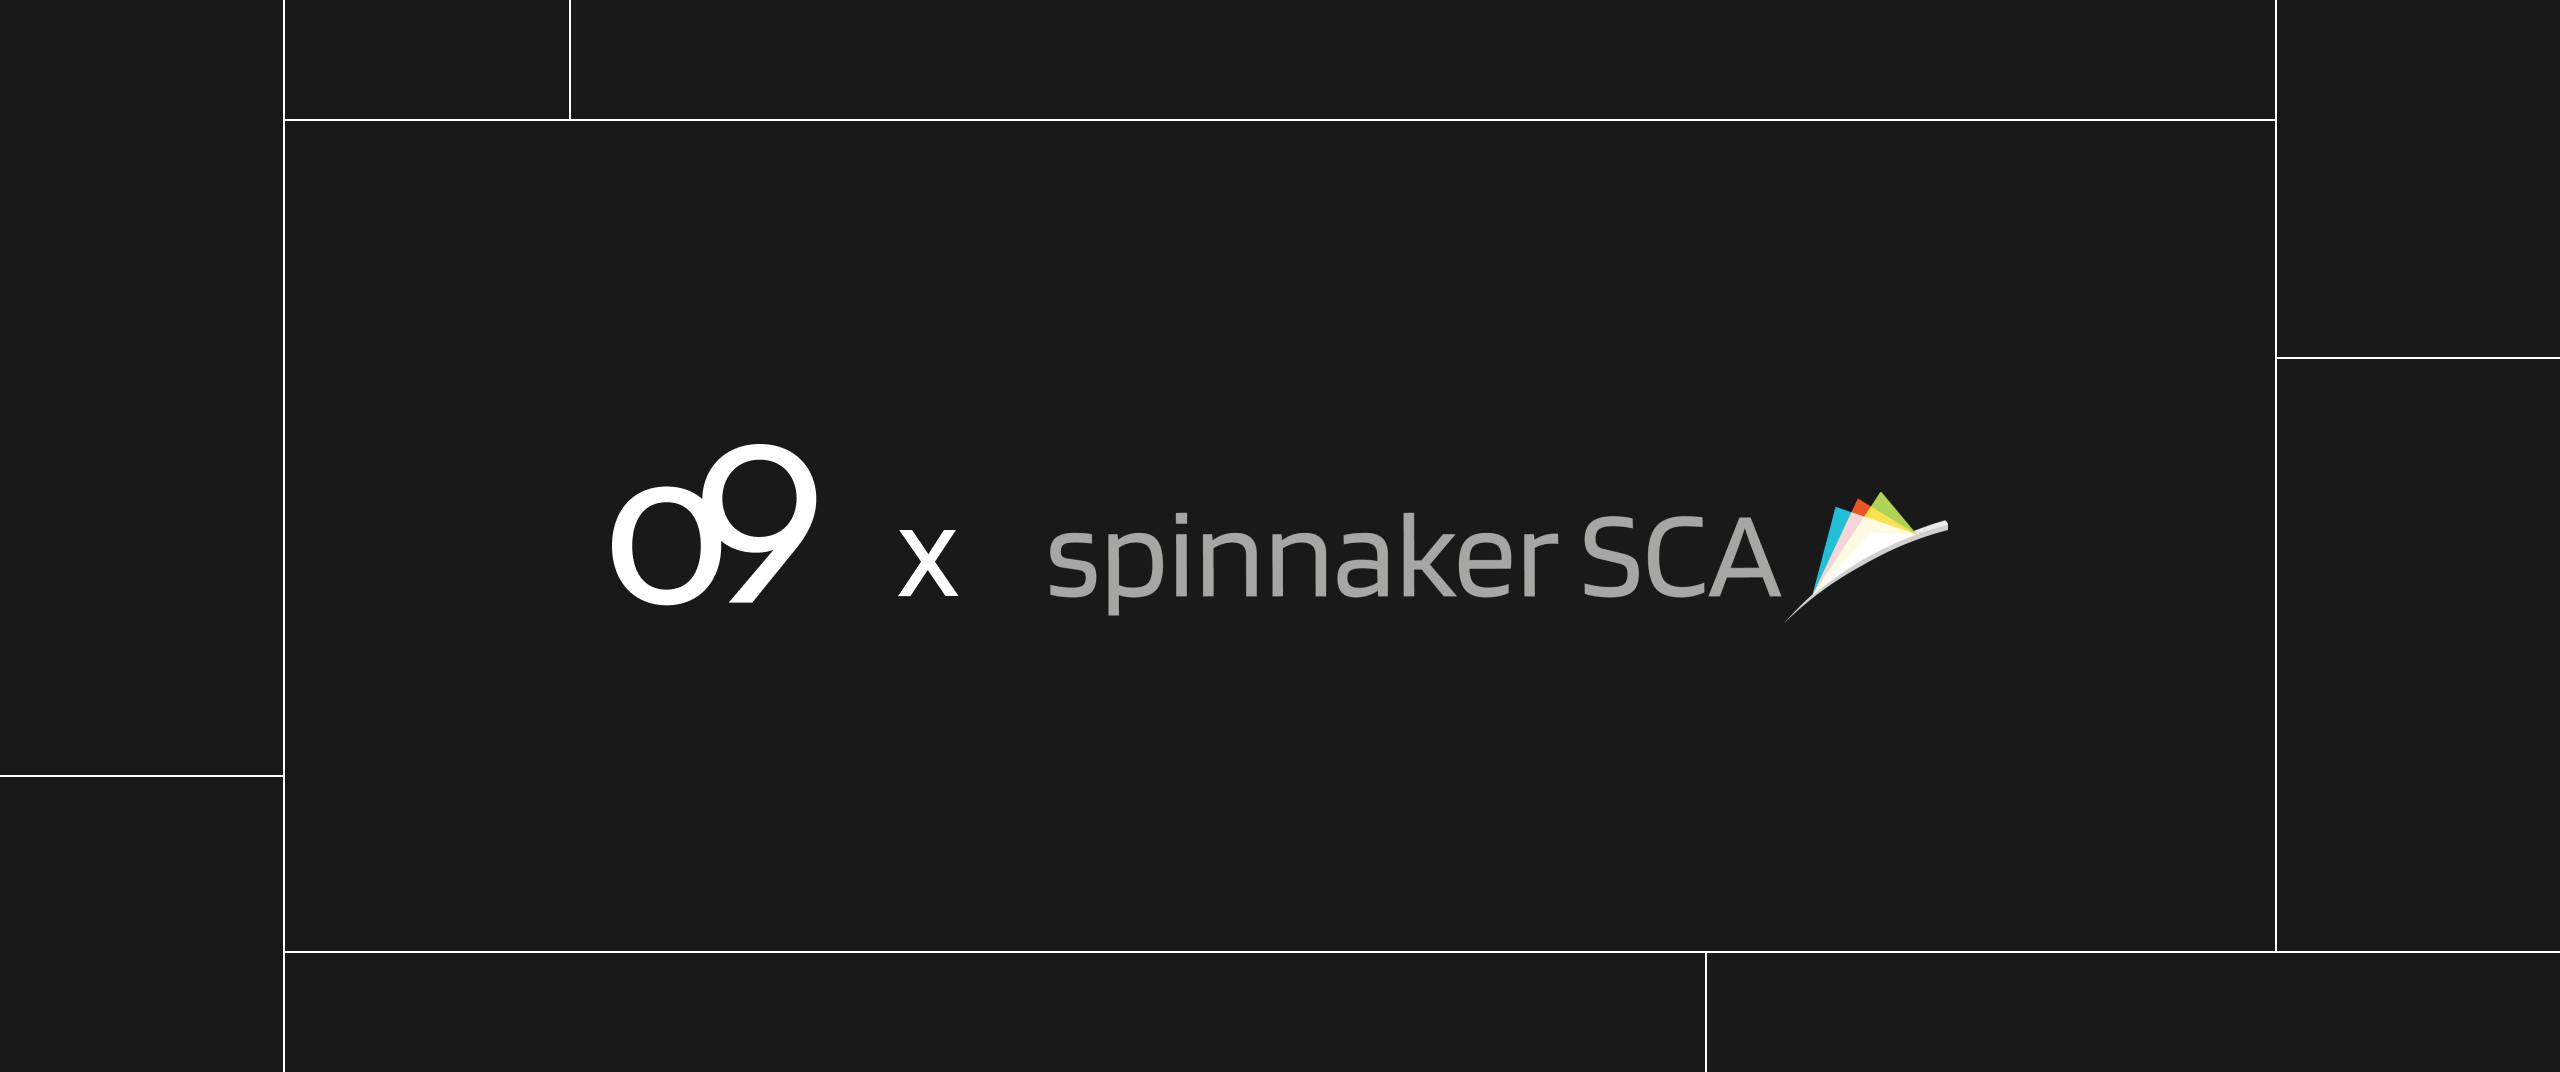 o9 Solutions and Spinnaker SCA Collaborate on Integrated Business Planning